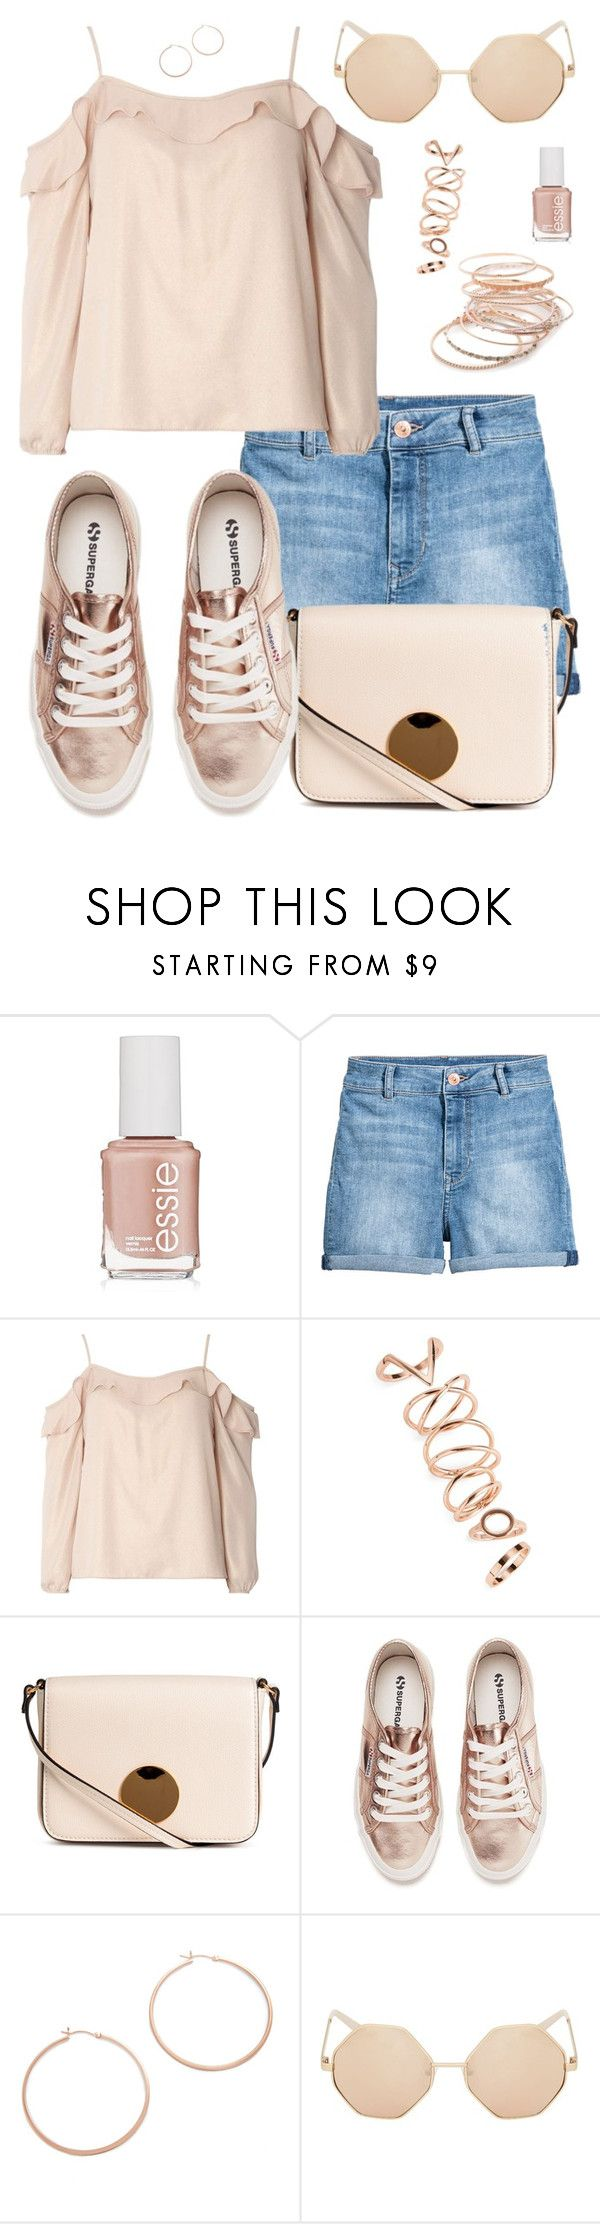 """Superga Women's 2750 Cotmetu Trainers - Rose Gold"" by dazzlious ❤ liked on Polyvore featuring Essie, H&M, Dorothy Perkins, Topshop, Superga, Jennifer Zeuner and Red Camel"